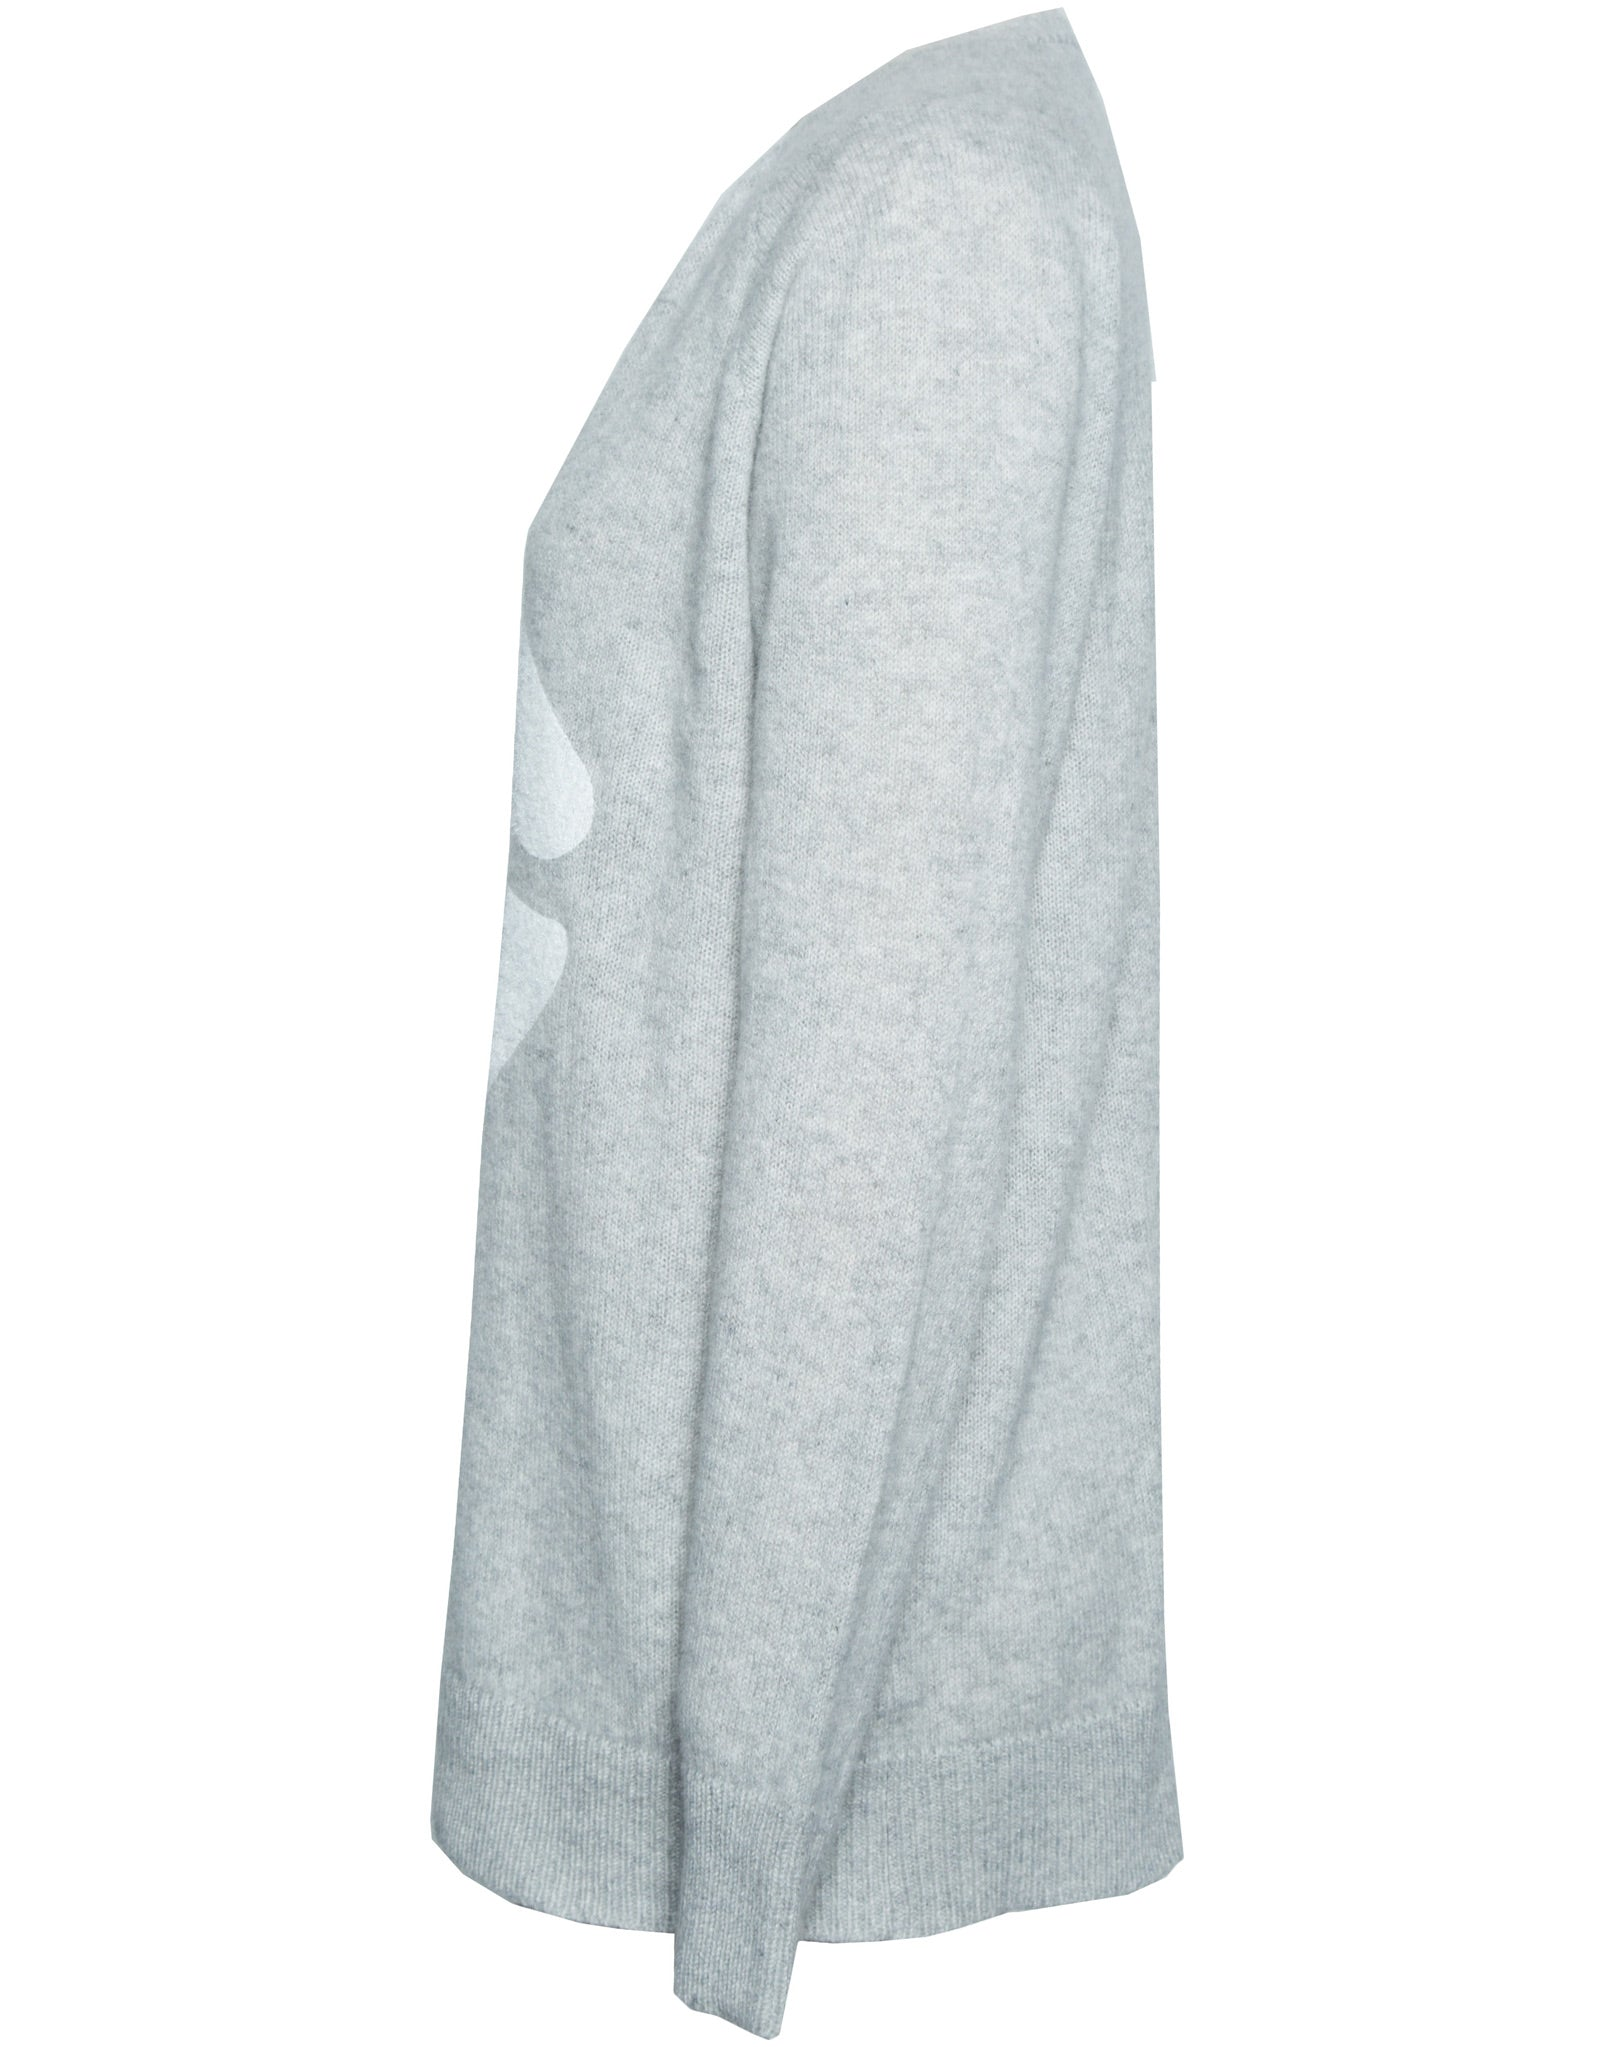 Macall White Mouth Oversized V-Neck Cashmere Sweater - Lauren Moshi - 3